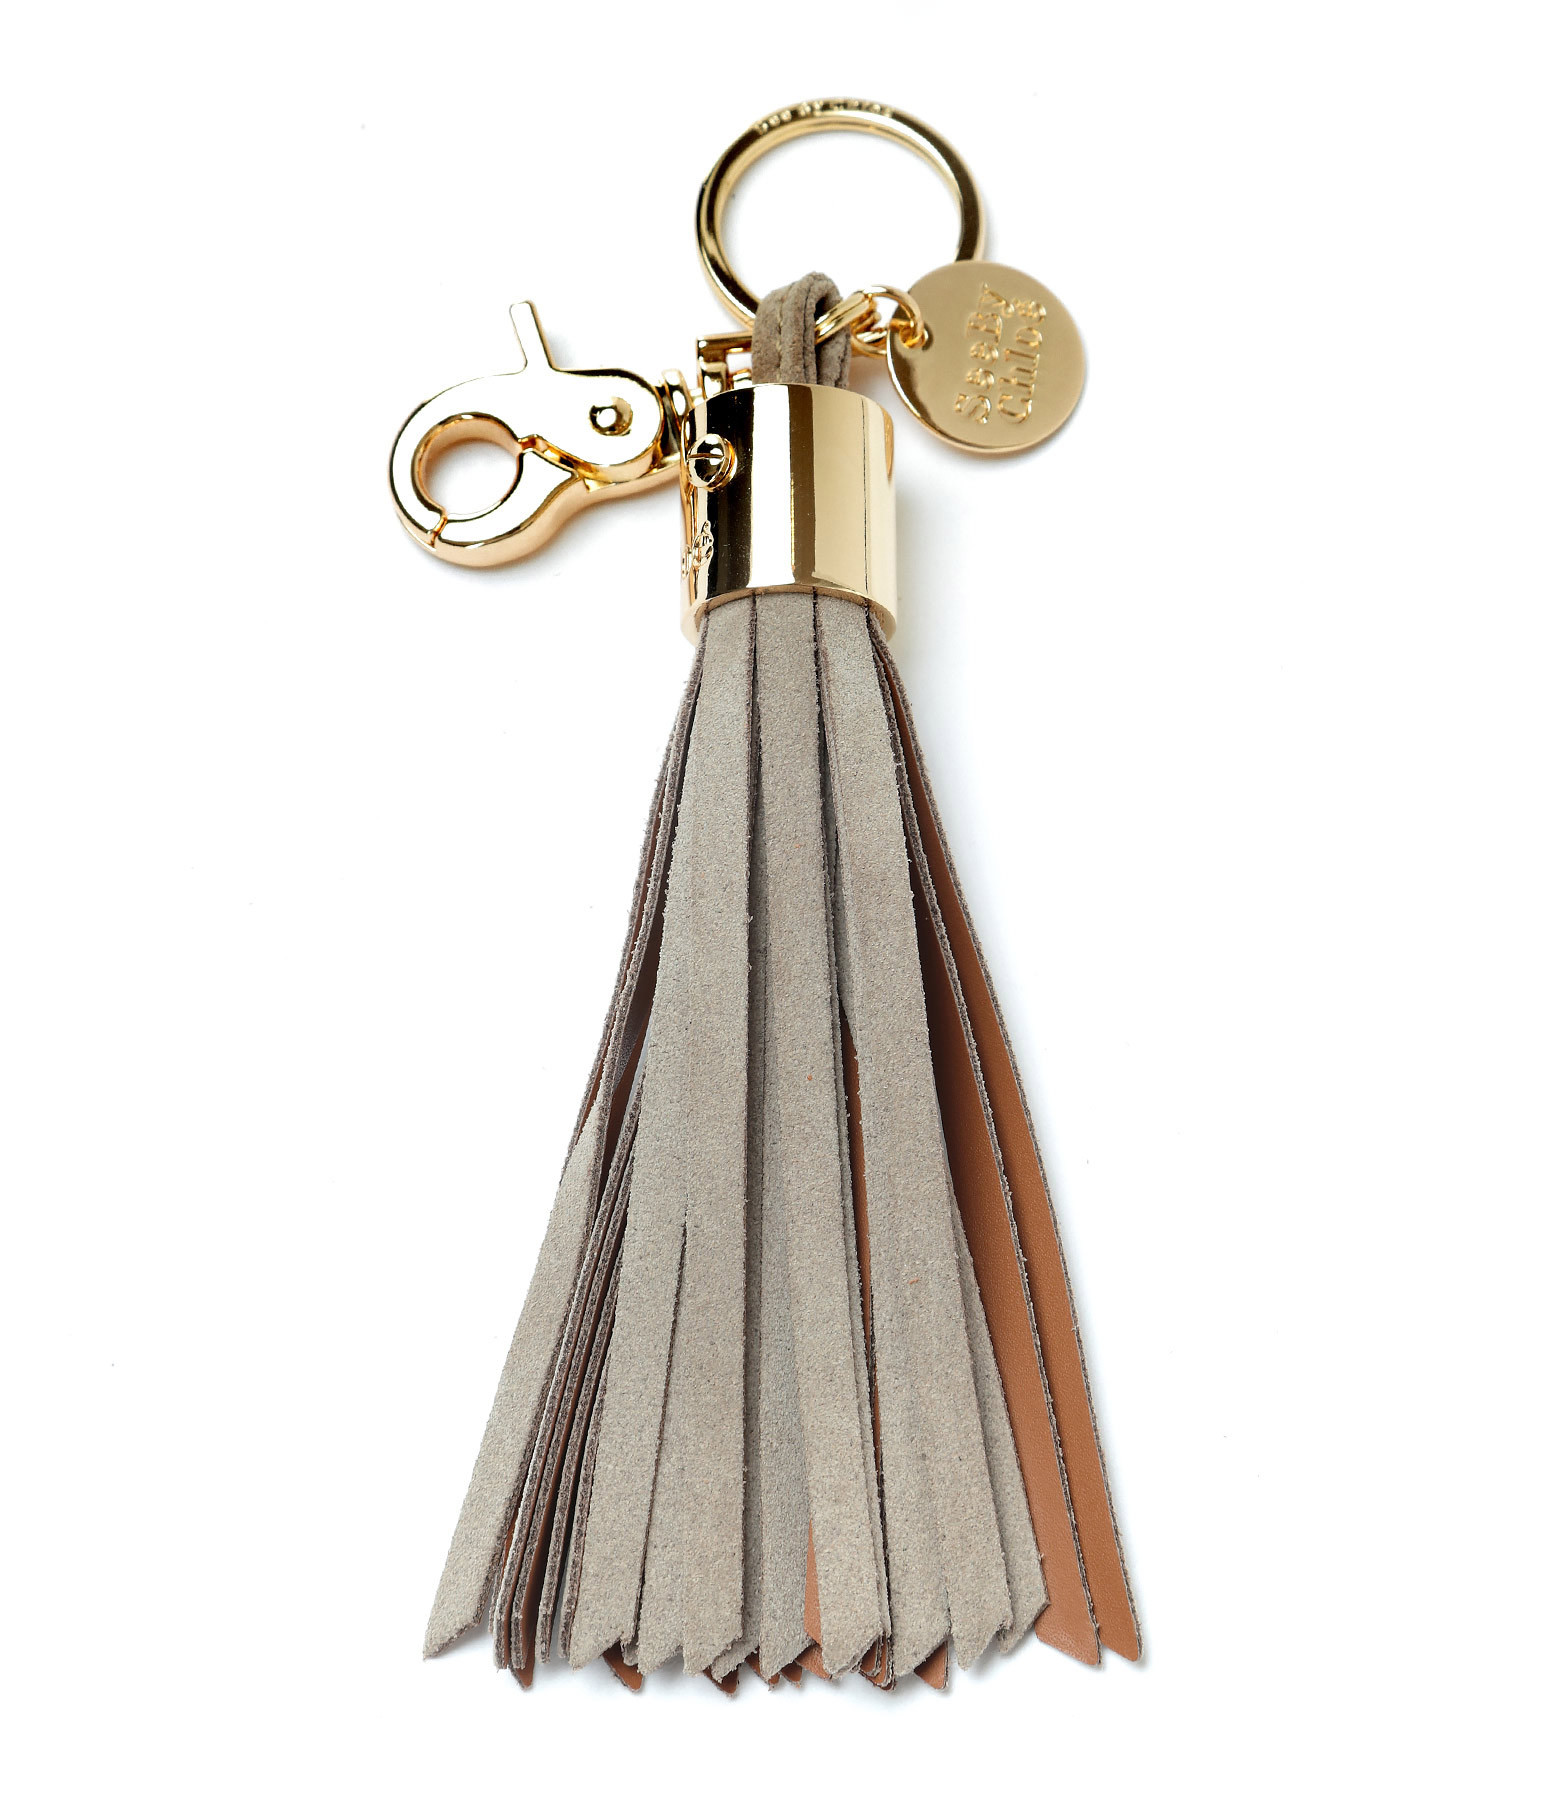 SEE BY CHLOE - Porte-clés Key Ring Pompon Cuir Suédé Motty Grey